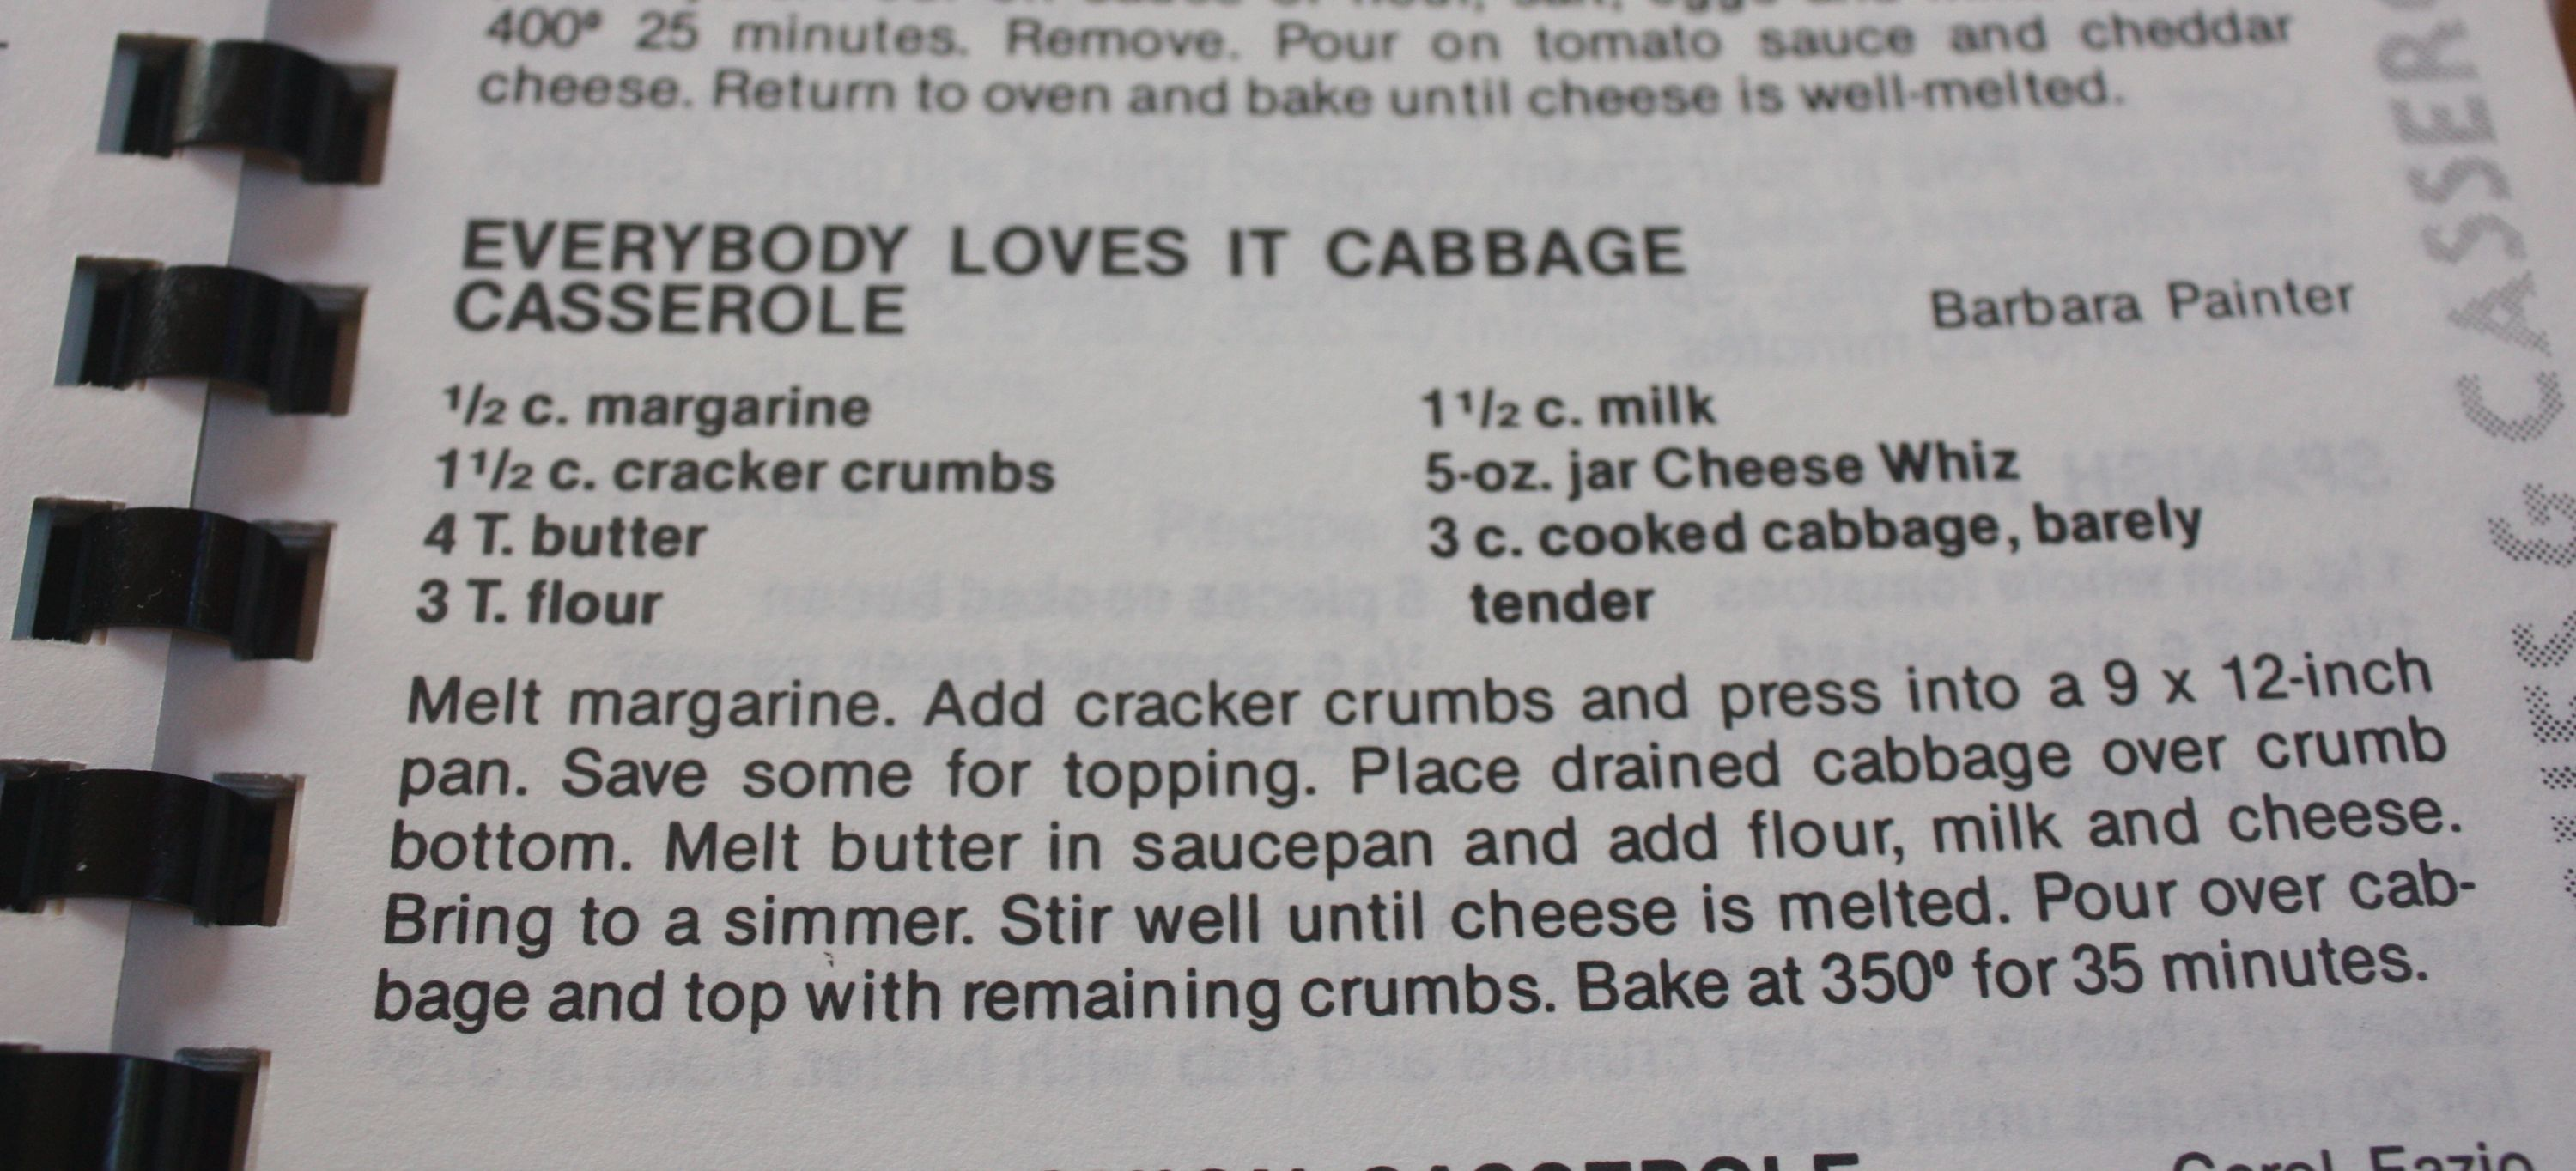 Everybody Loves It Cabbage